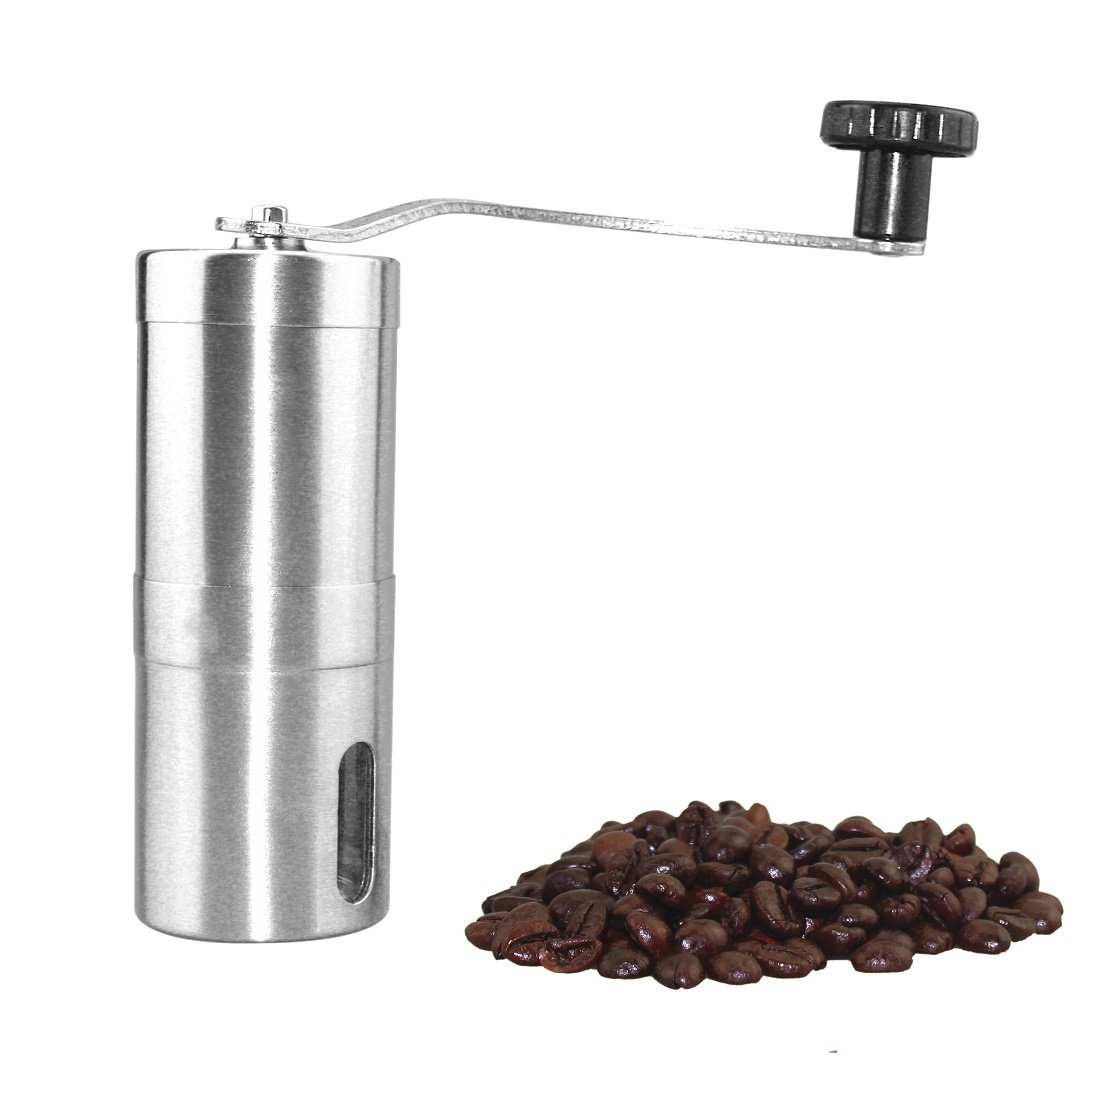 Portable Stainless Steel Manual Coffee Grinder, Ergonomic Hand Crank Mill, Adjustable Ceramic Burr for Grinding Fine or Coarse Beans, Precision Easy to Clean & Carry-Great for Travelling Silver